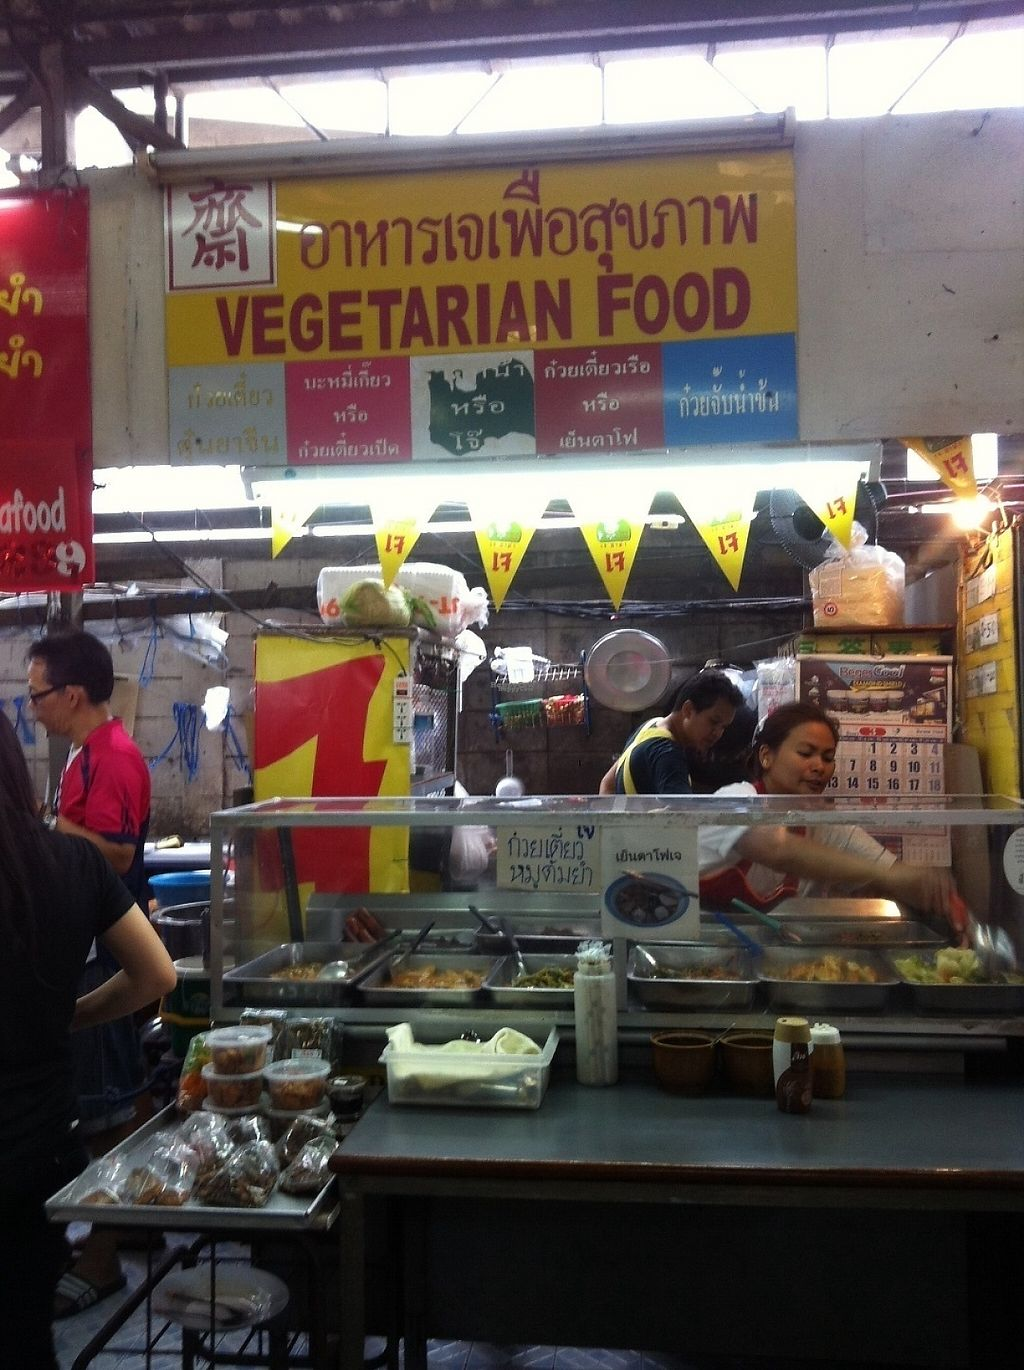 """Photo of Soi Naradhiwas Rajanagarindra - Vegetarian Food Stall  by <a href=""""/members/profile/Cyclinggal"""">Cyclinggal</a> <br/>Vegetarian food stall <br/> March 23, 2017  - <a href='/contact/abuse/image/89045/239660'>Report</a>"""